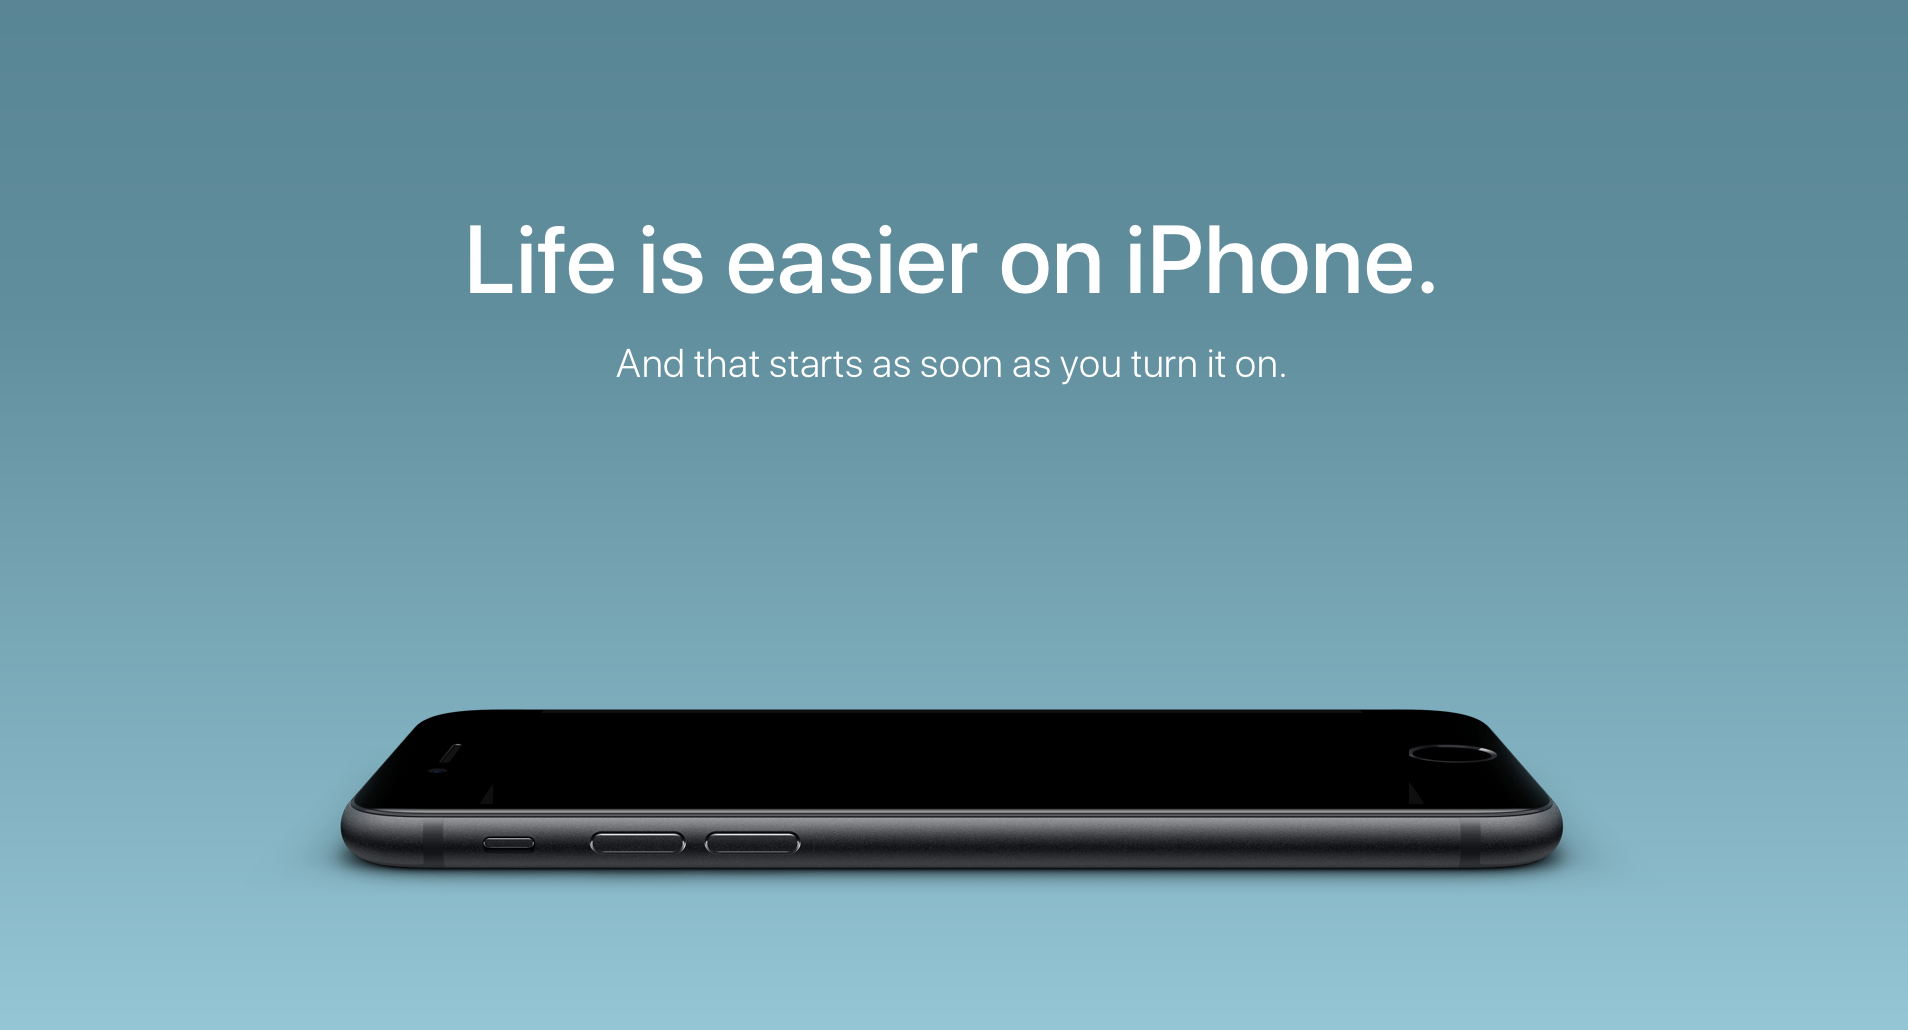 Apples updated android switch campaign explains why people move apples updated android switch campaign explains why people move to iphone macworld publicscrutiny Choice Image